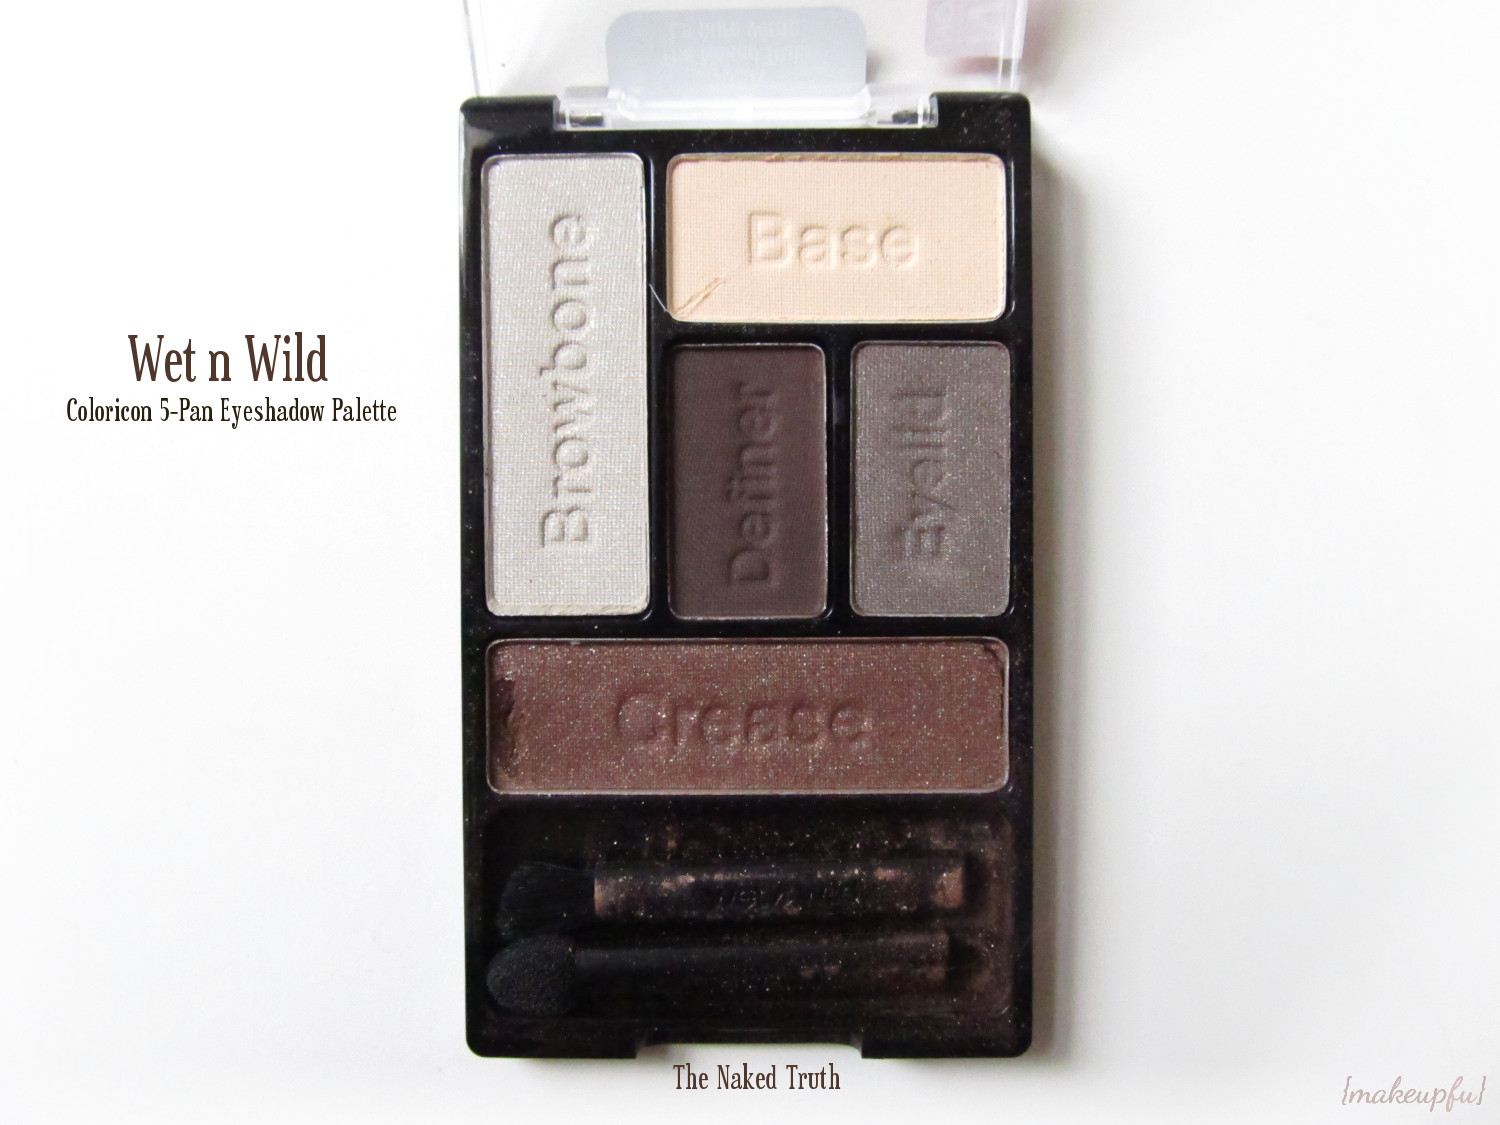 Wet N Wild Color Icon Eyeshadow Palette 5 Pan - 395A The